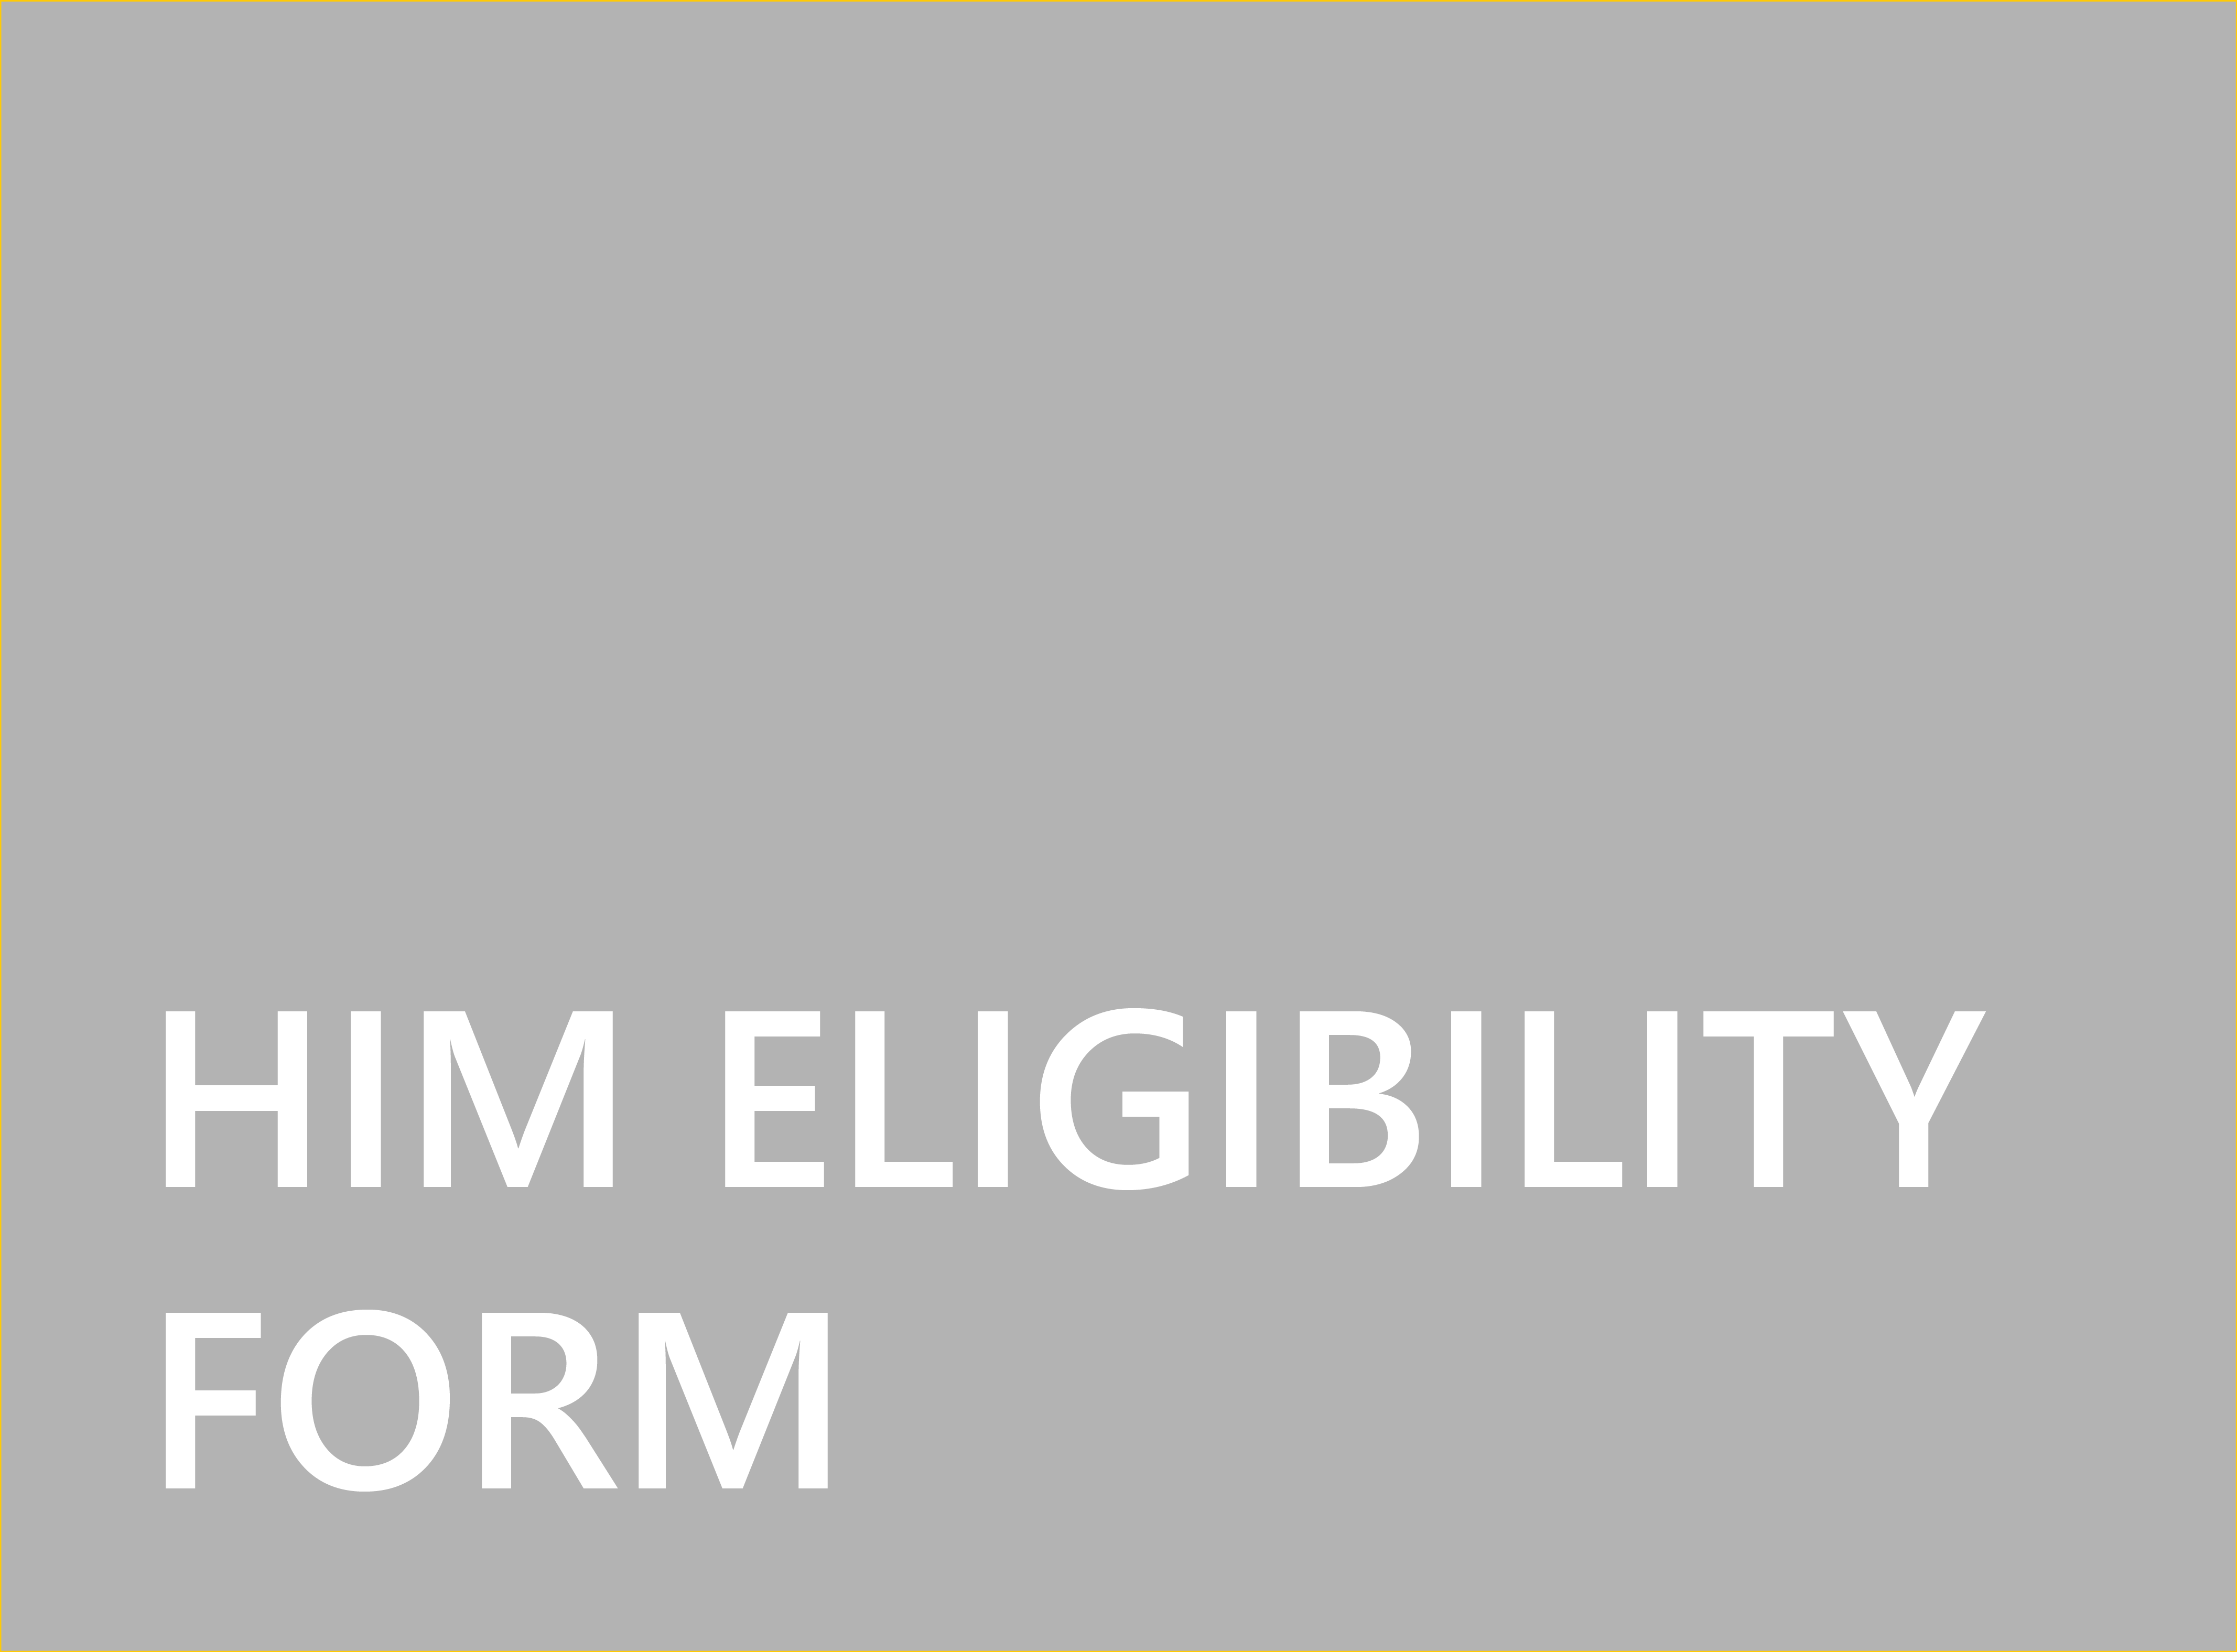 HIM Eligibility Form